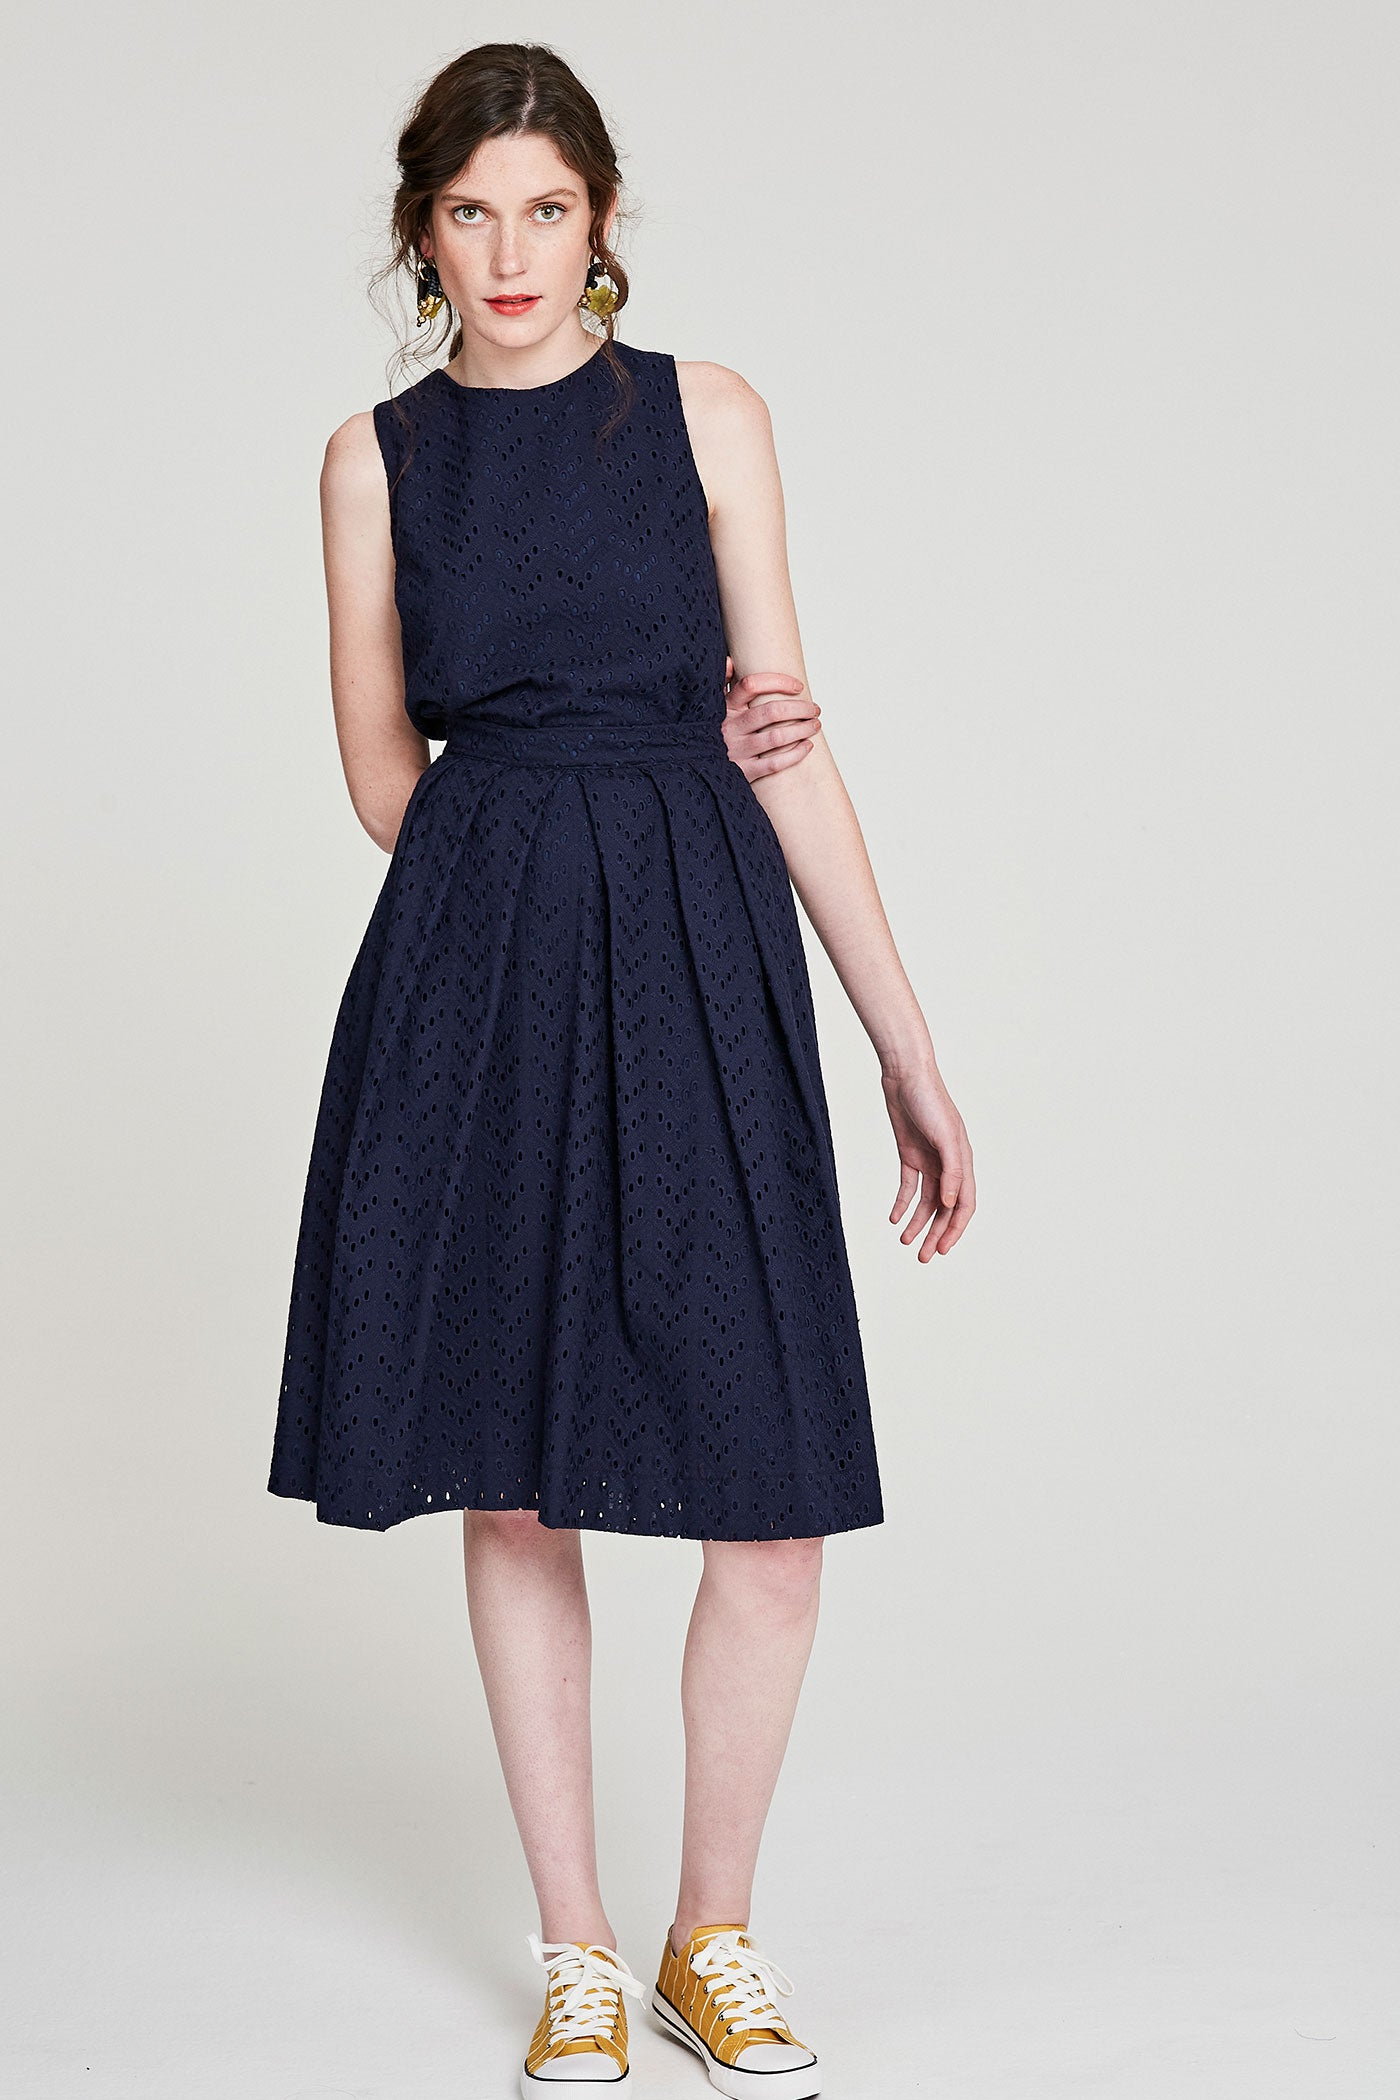 Grace Skirt - Navy Anglaise